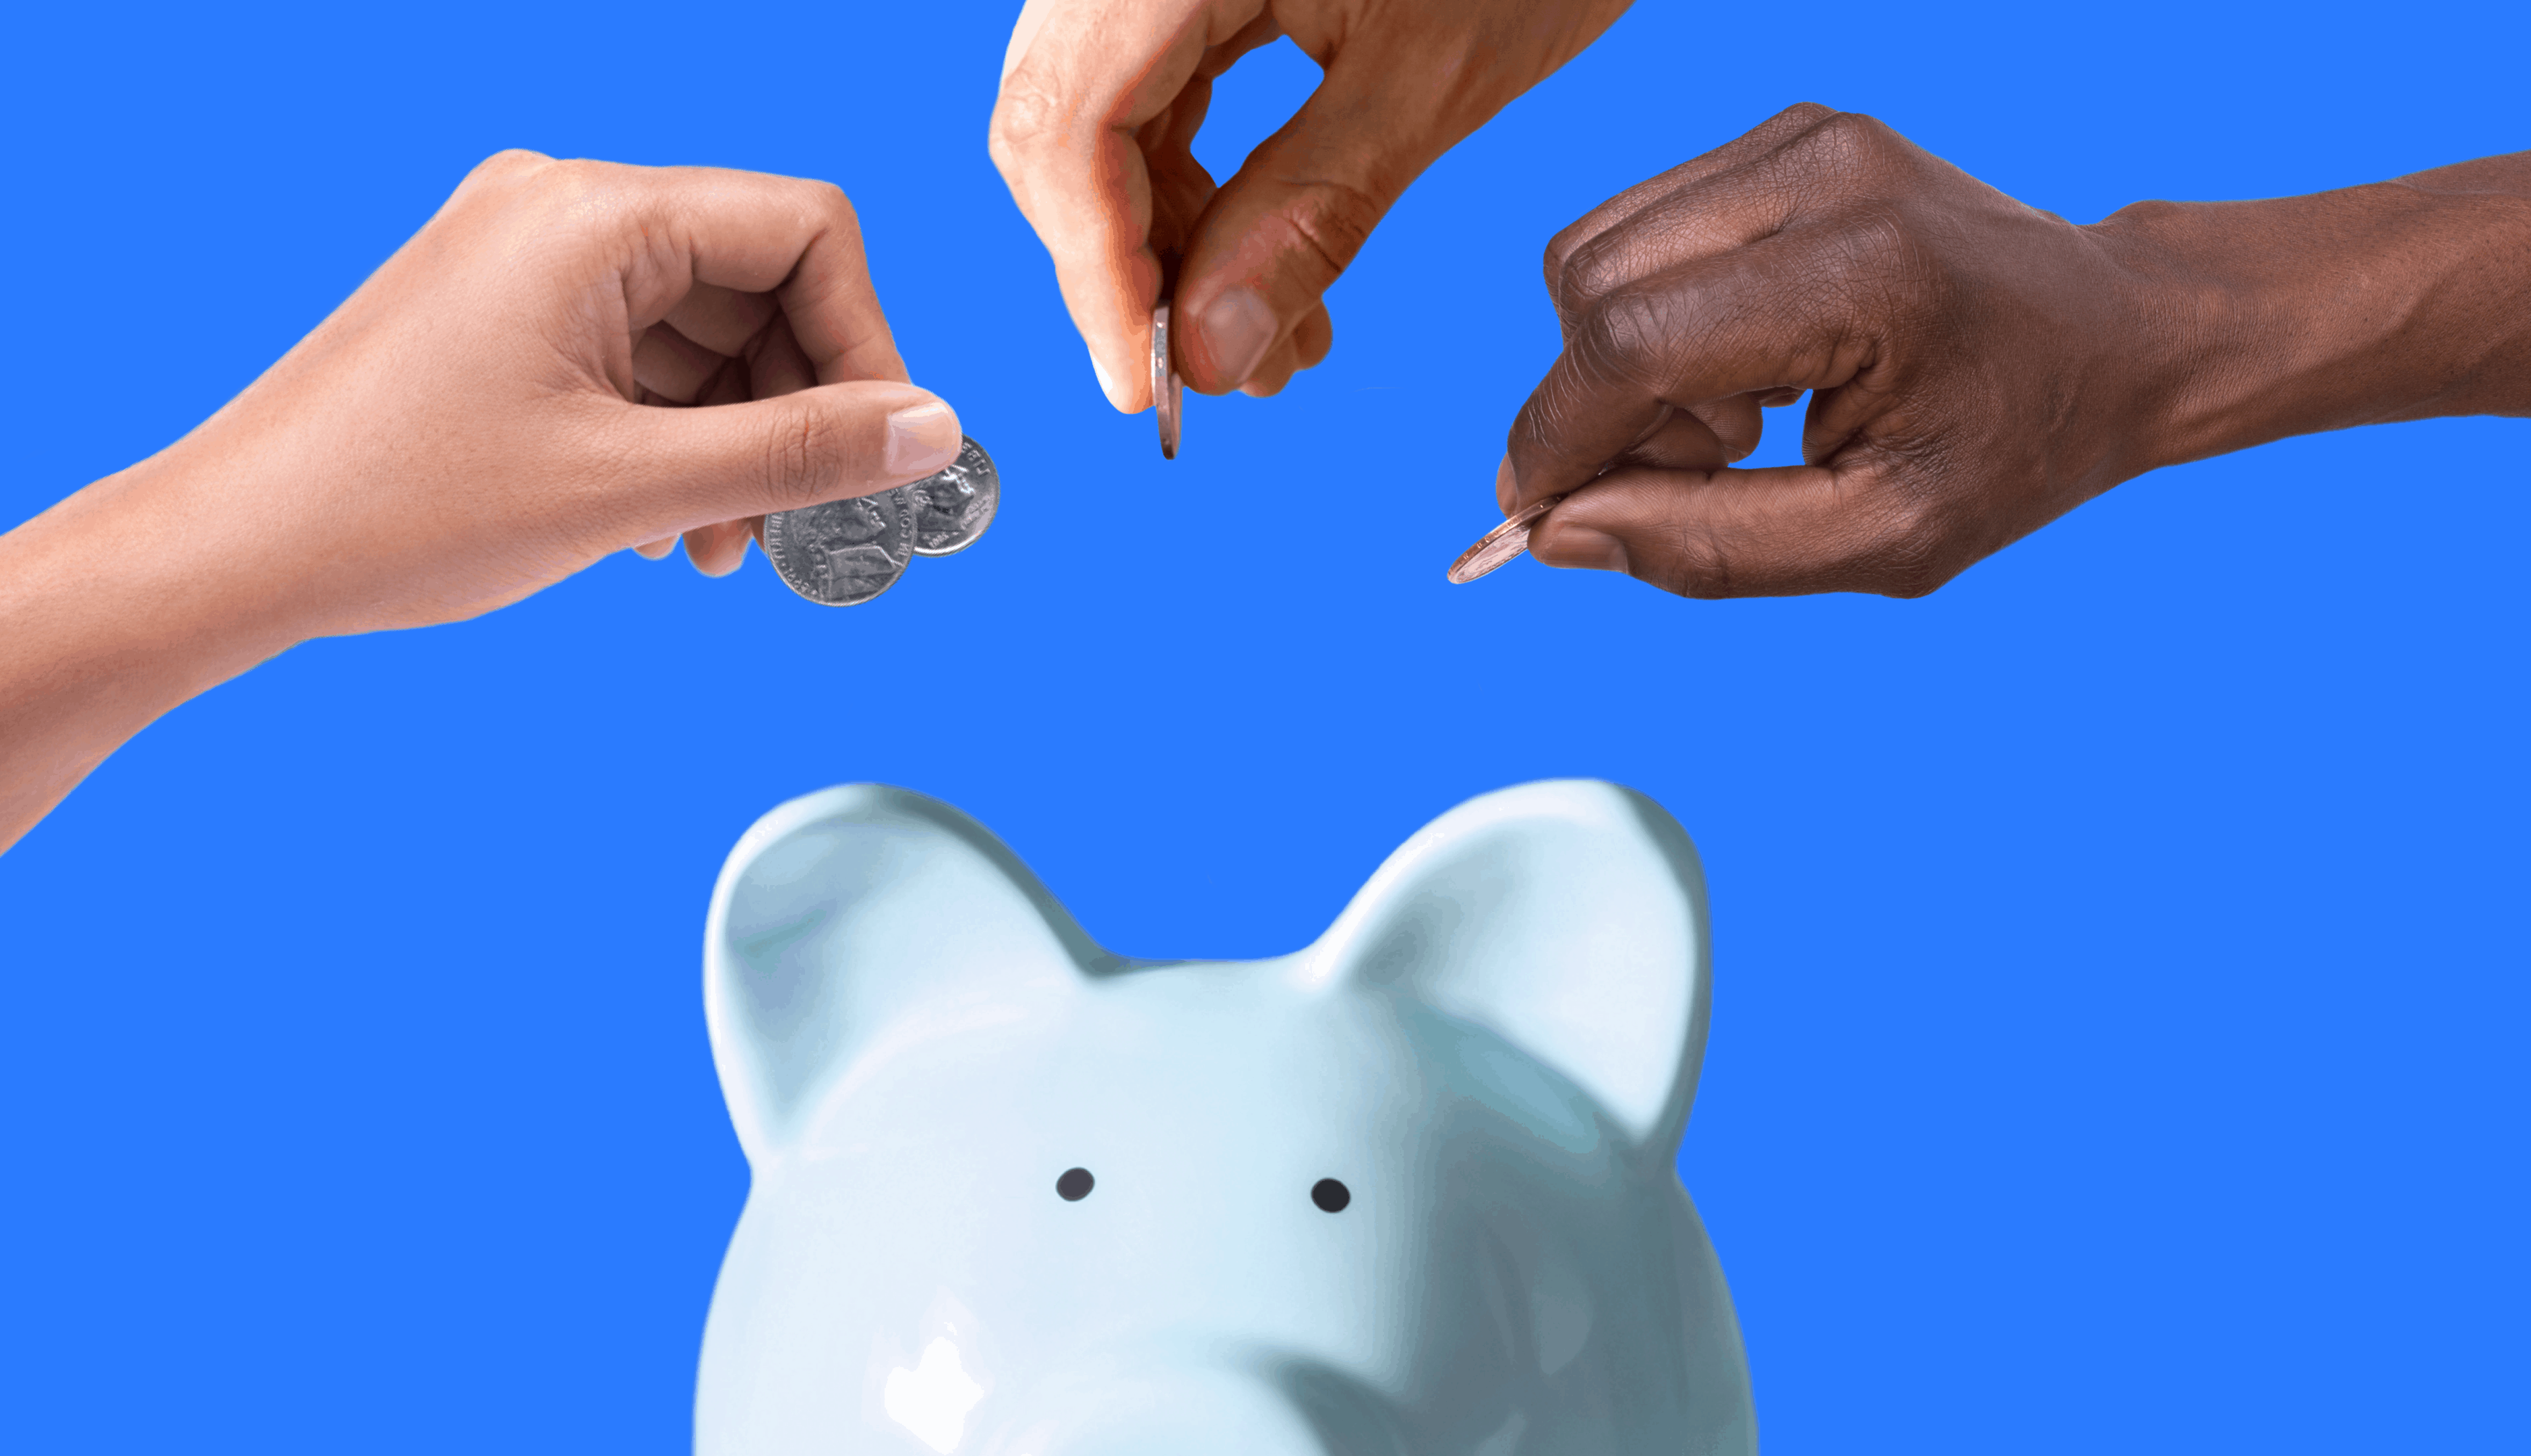 Title: Have Questions About HSA Contributions? We've Got Answers Graphic: hands putting money into a piggy bank